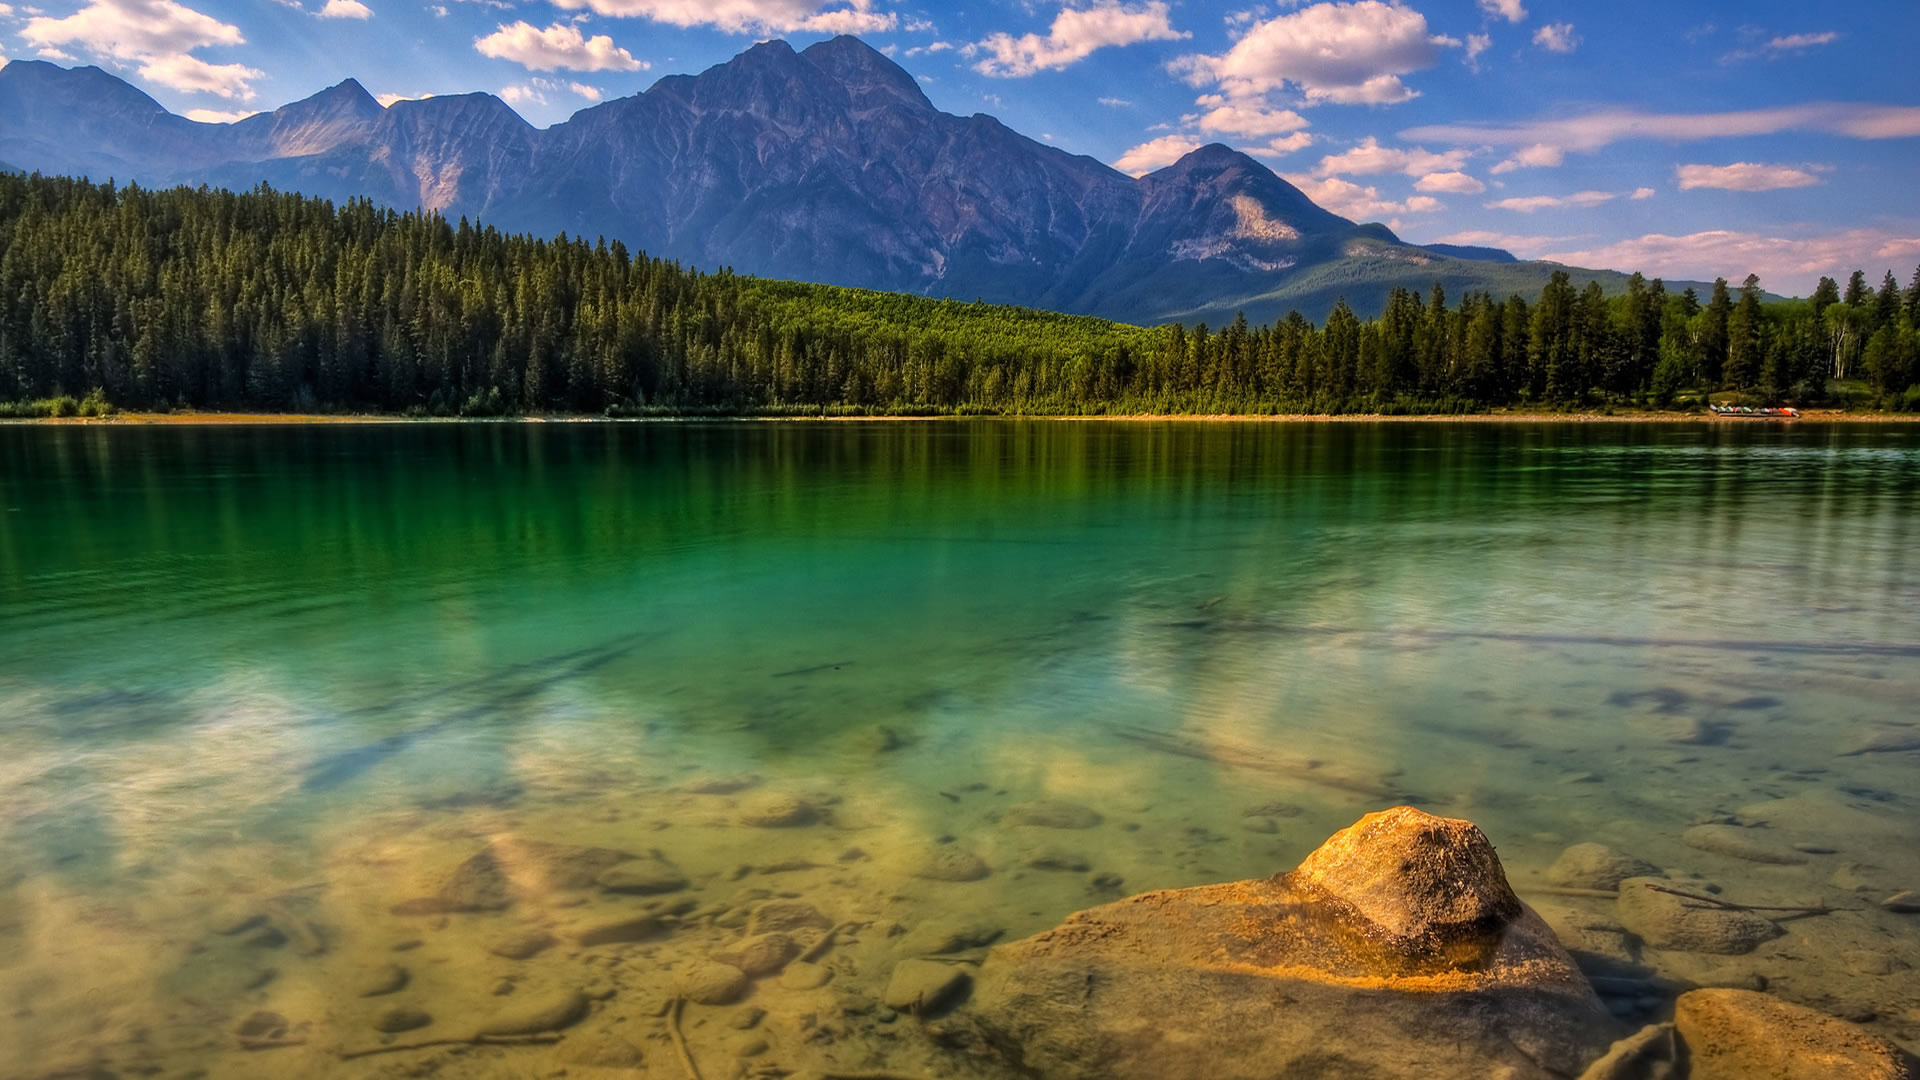 Wallpaper Dump.. HDR Nature-glurious-nature-lscape-hdr-225112